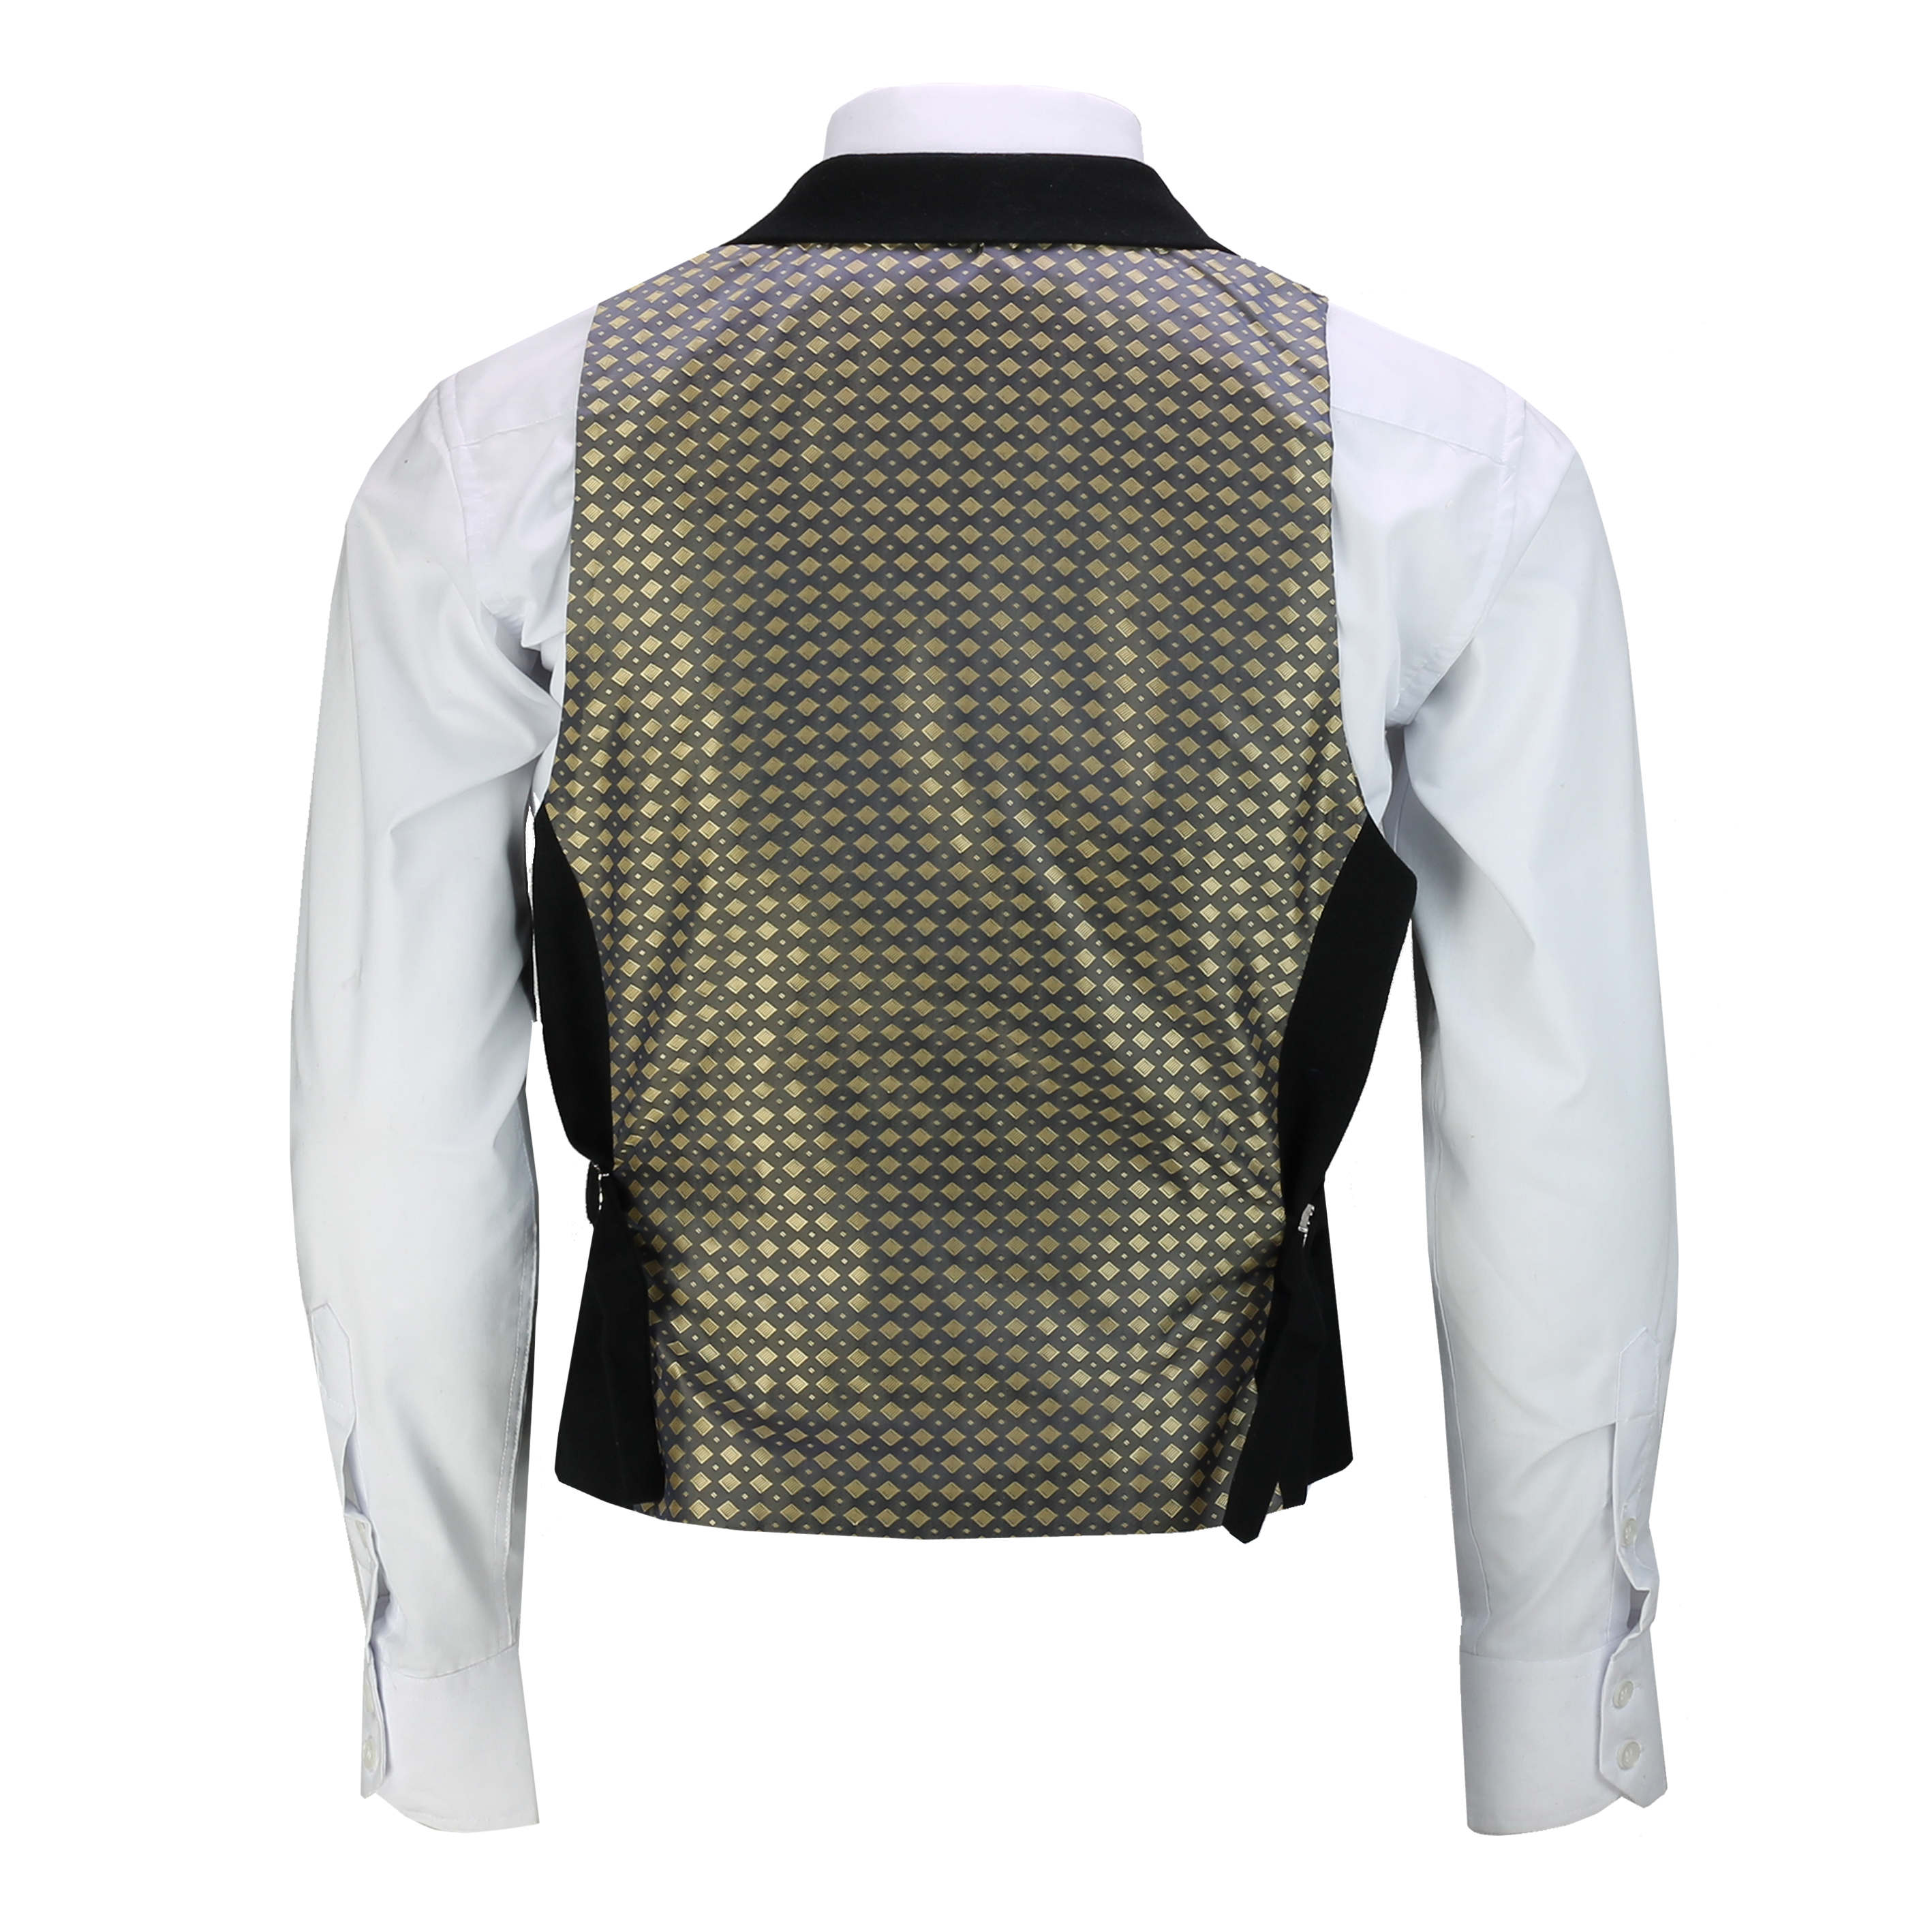 Mens-Classic-Collar-Waistcoat-Retro-Vintage-Style-Tailored-Fit-Smart-Formal-Vest thumbnail 4